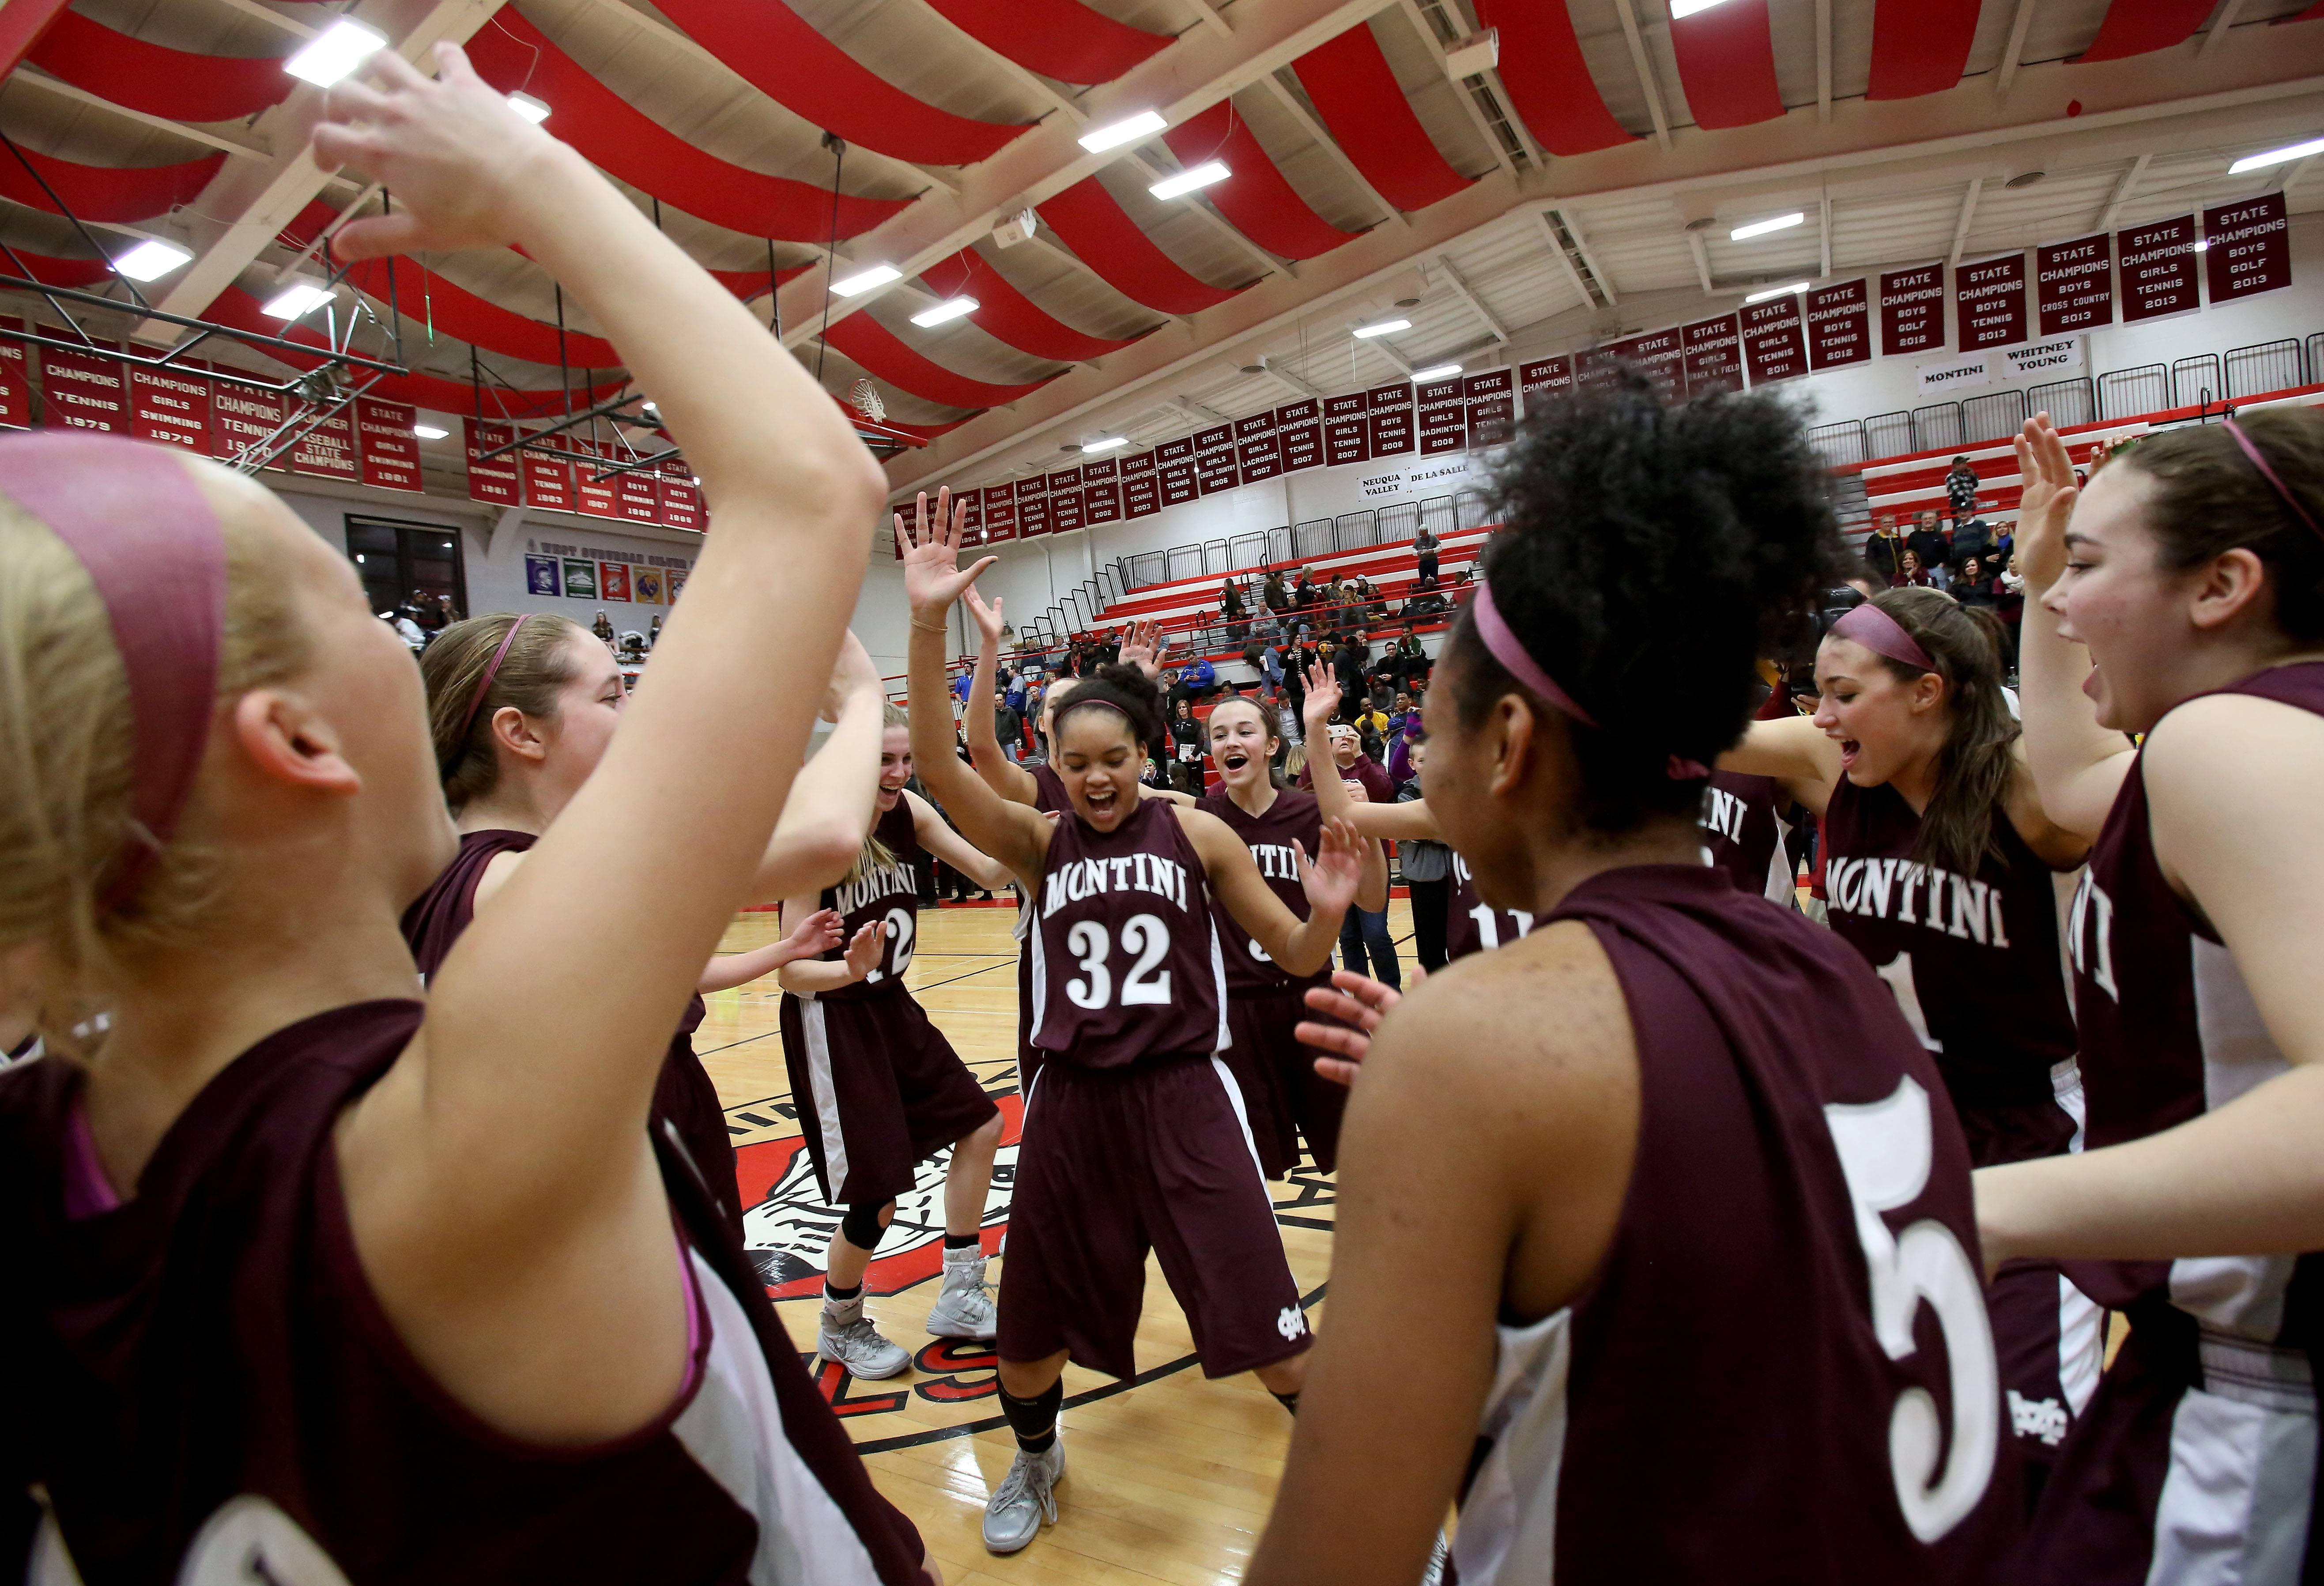 Montini celebrates in their 59-27 win over De La Salle in Class 3A supersectional girls basketball at Hinsdale Central on Monday.